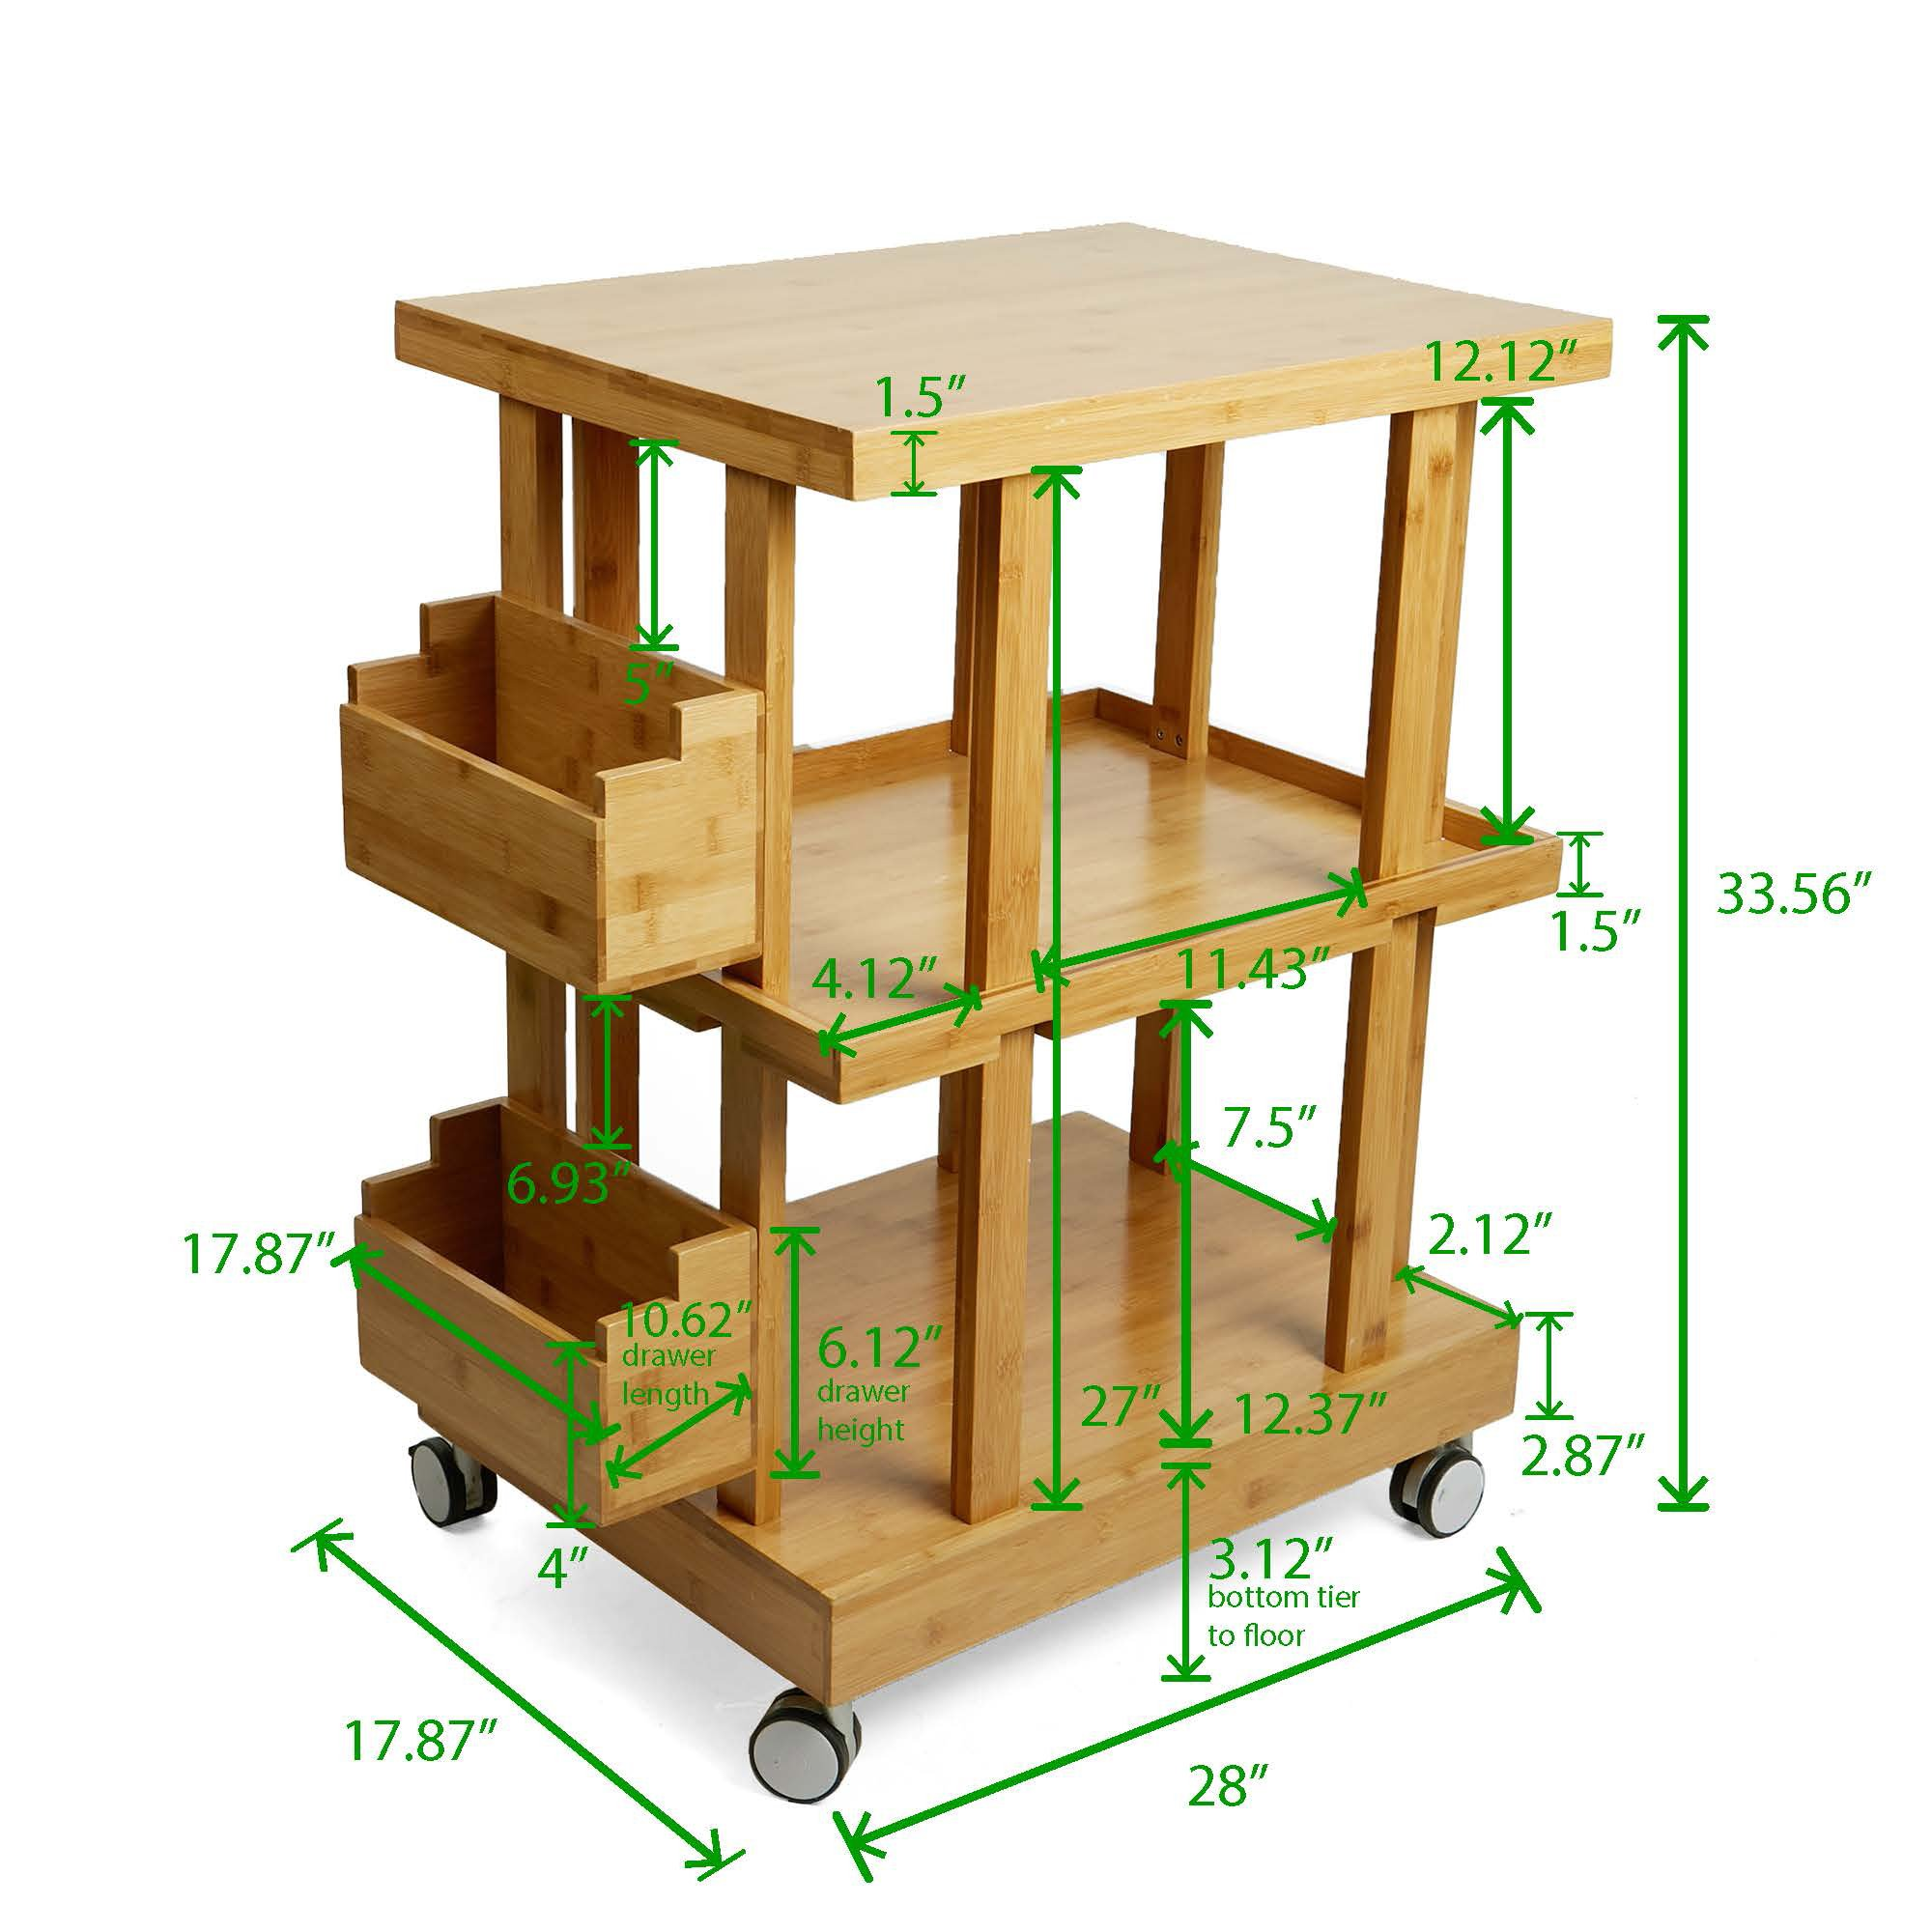 Mind Reader 3-Tier Kitchen Utility Cart with 2 Storage Compartments, Bamboo Wood, Brown by Mind Reader (Image #5)